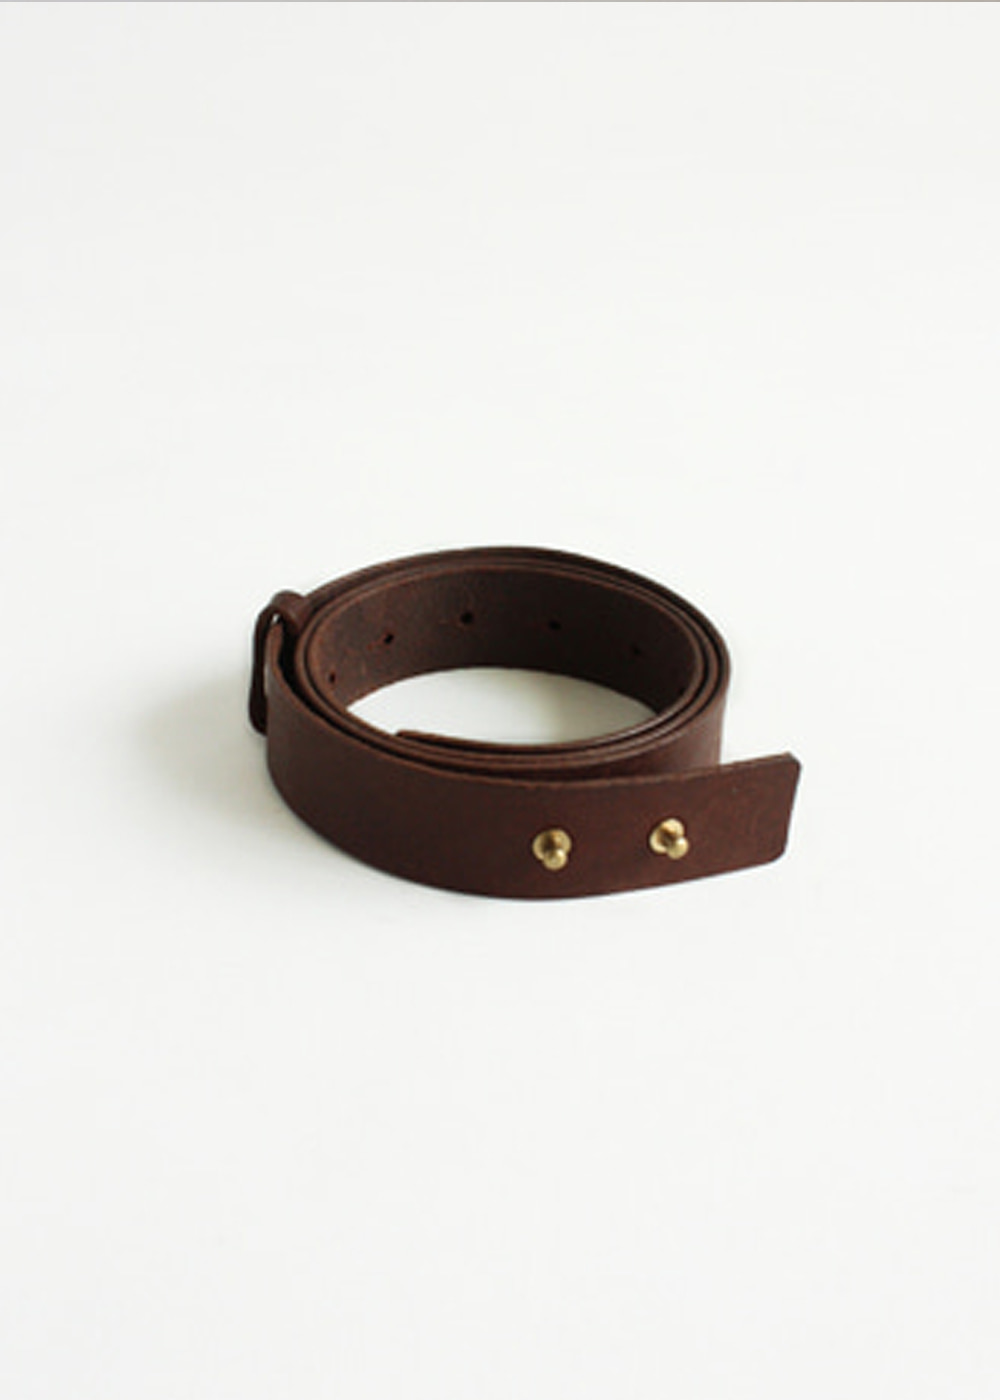 LEATHER BELT - 30mm